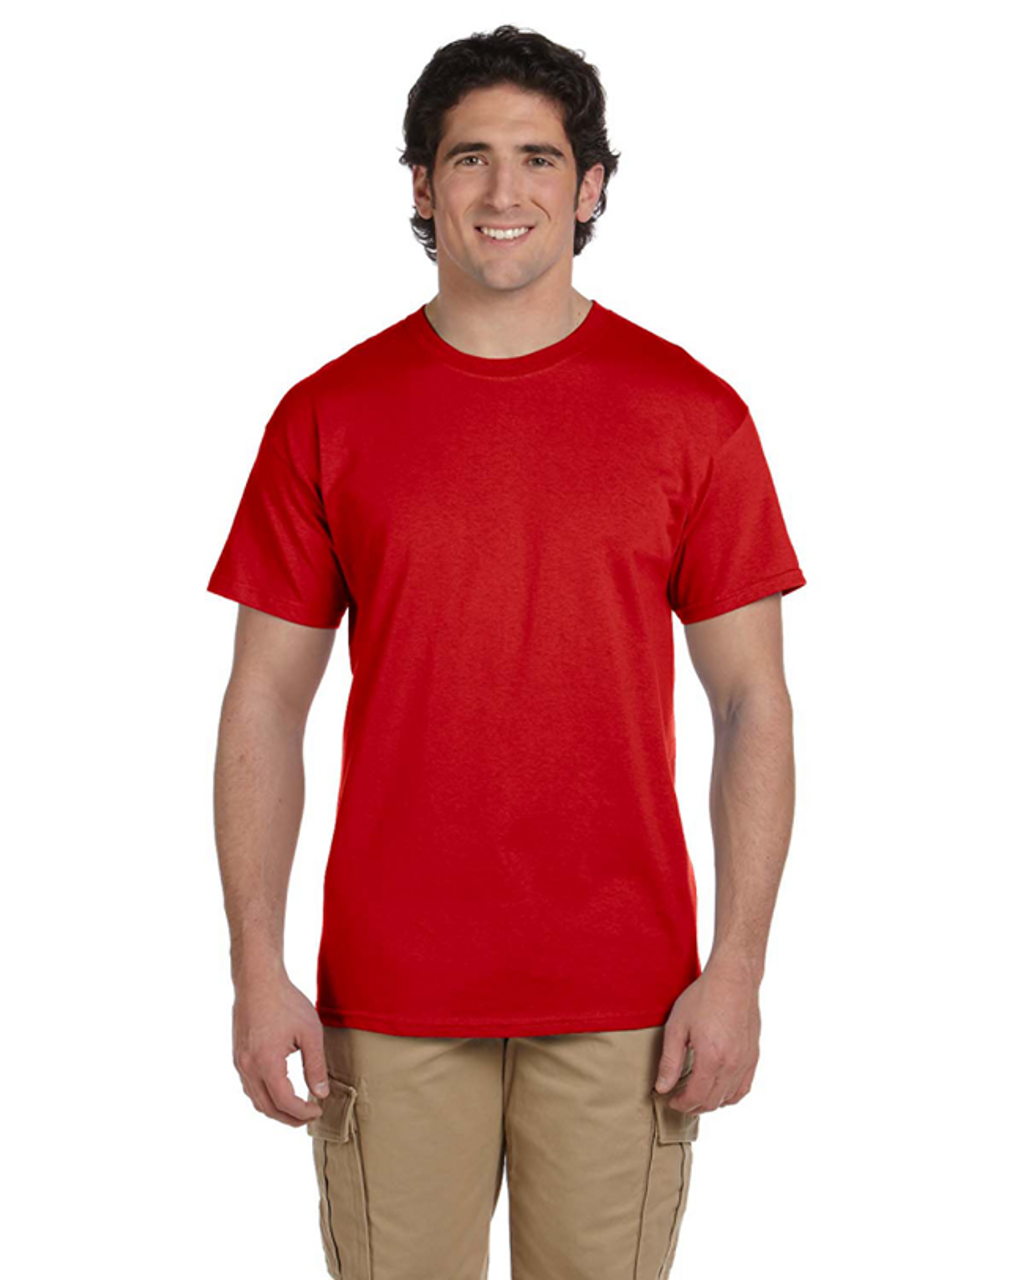 True Red - 3931 Fruit of the Loom 100% Heavy Cotton HD® T-Shirt | Blankclothing.ca